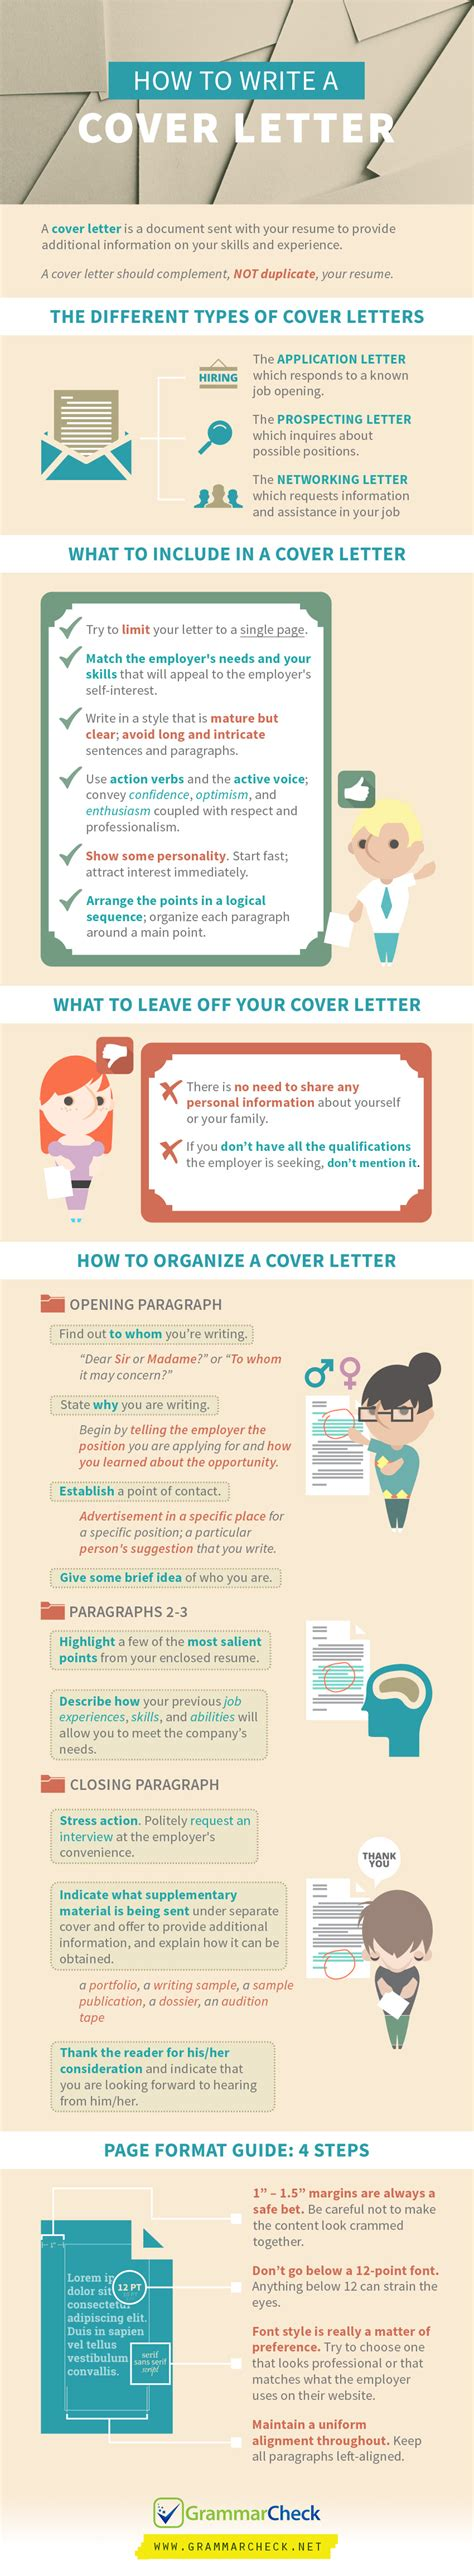 how to write a cover letter step by step how to write a cover letter step by step infographic